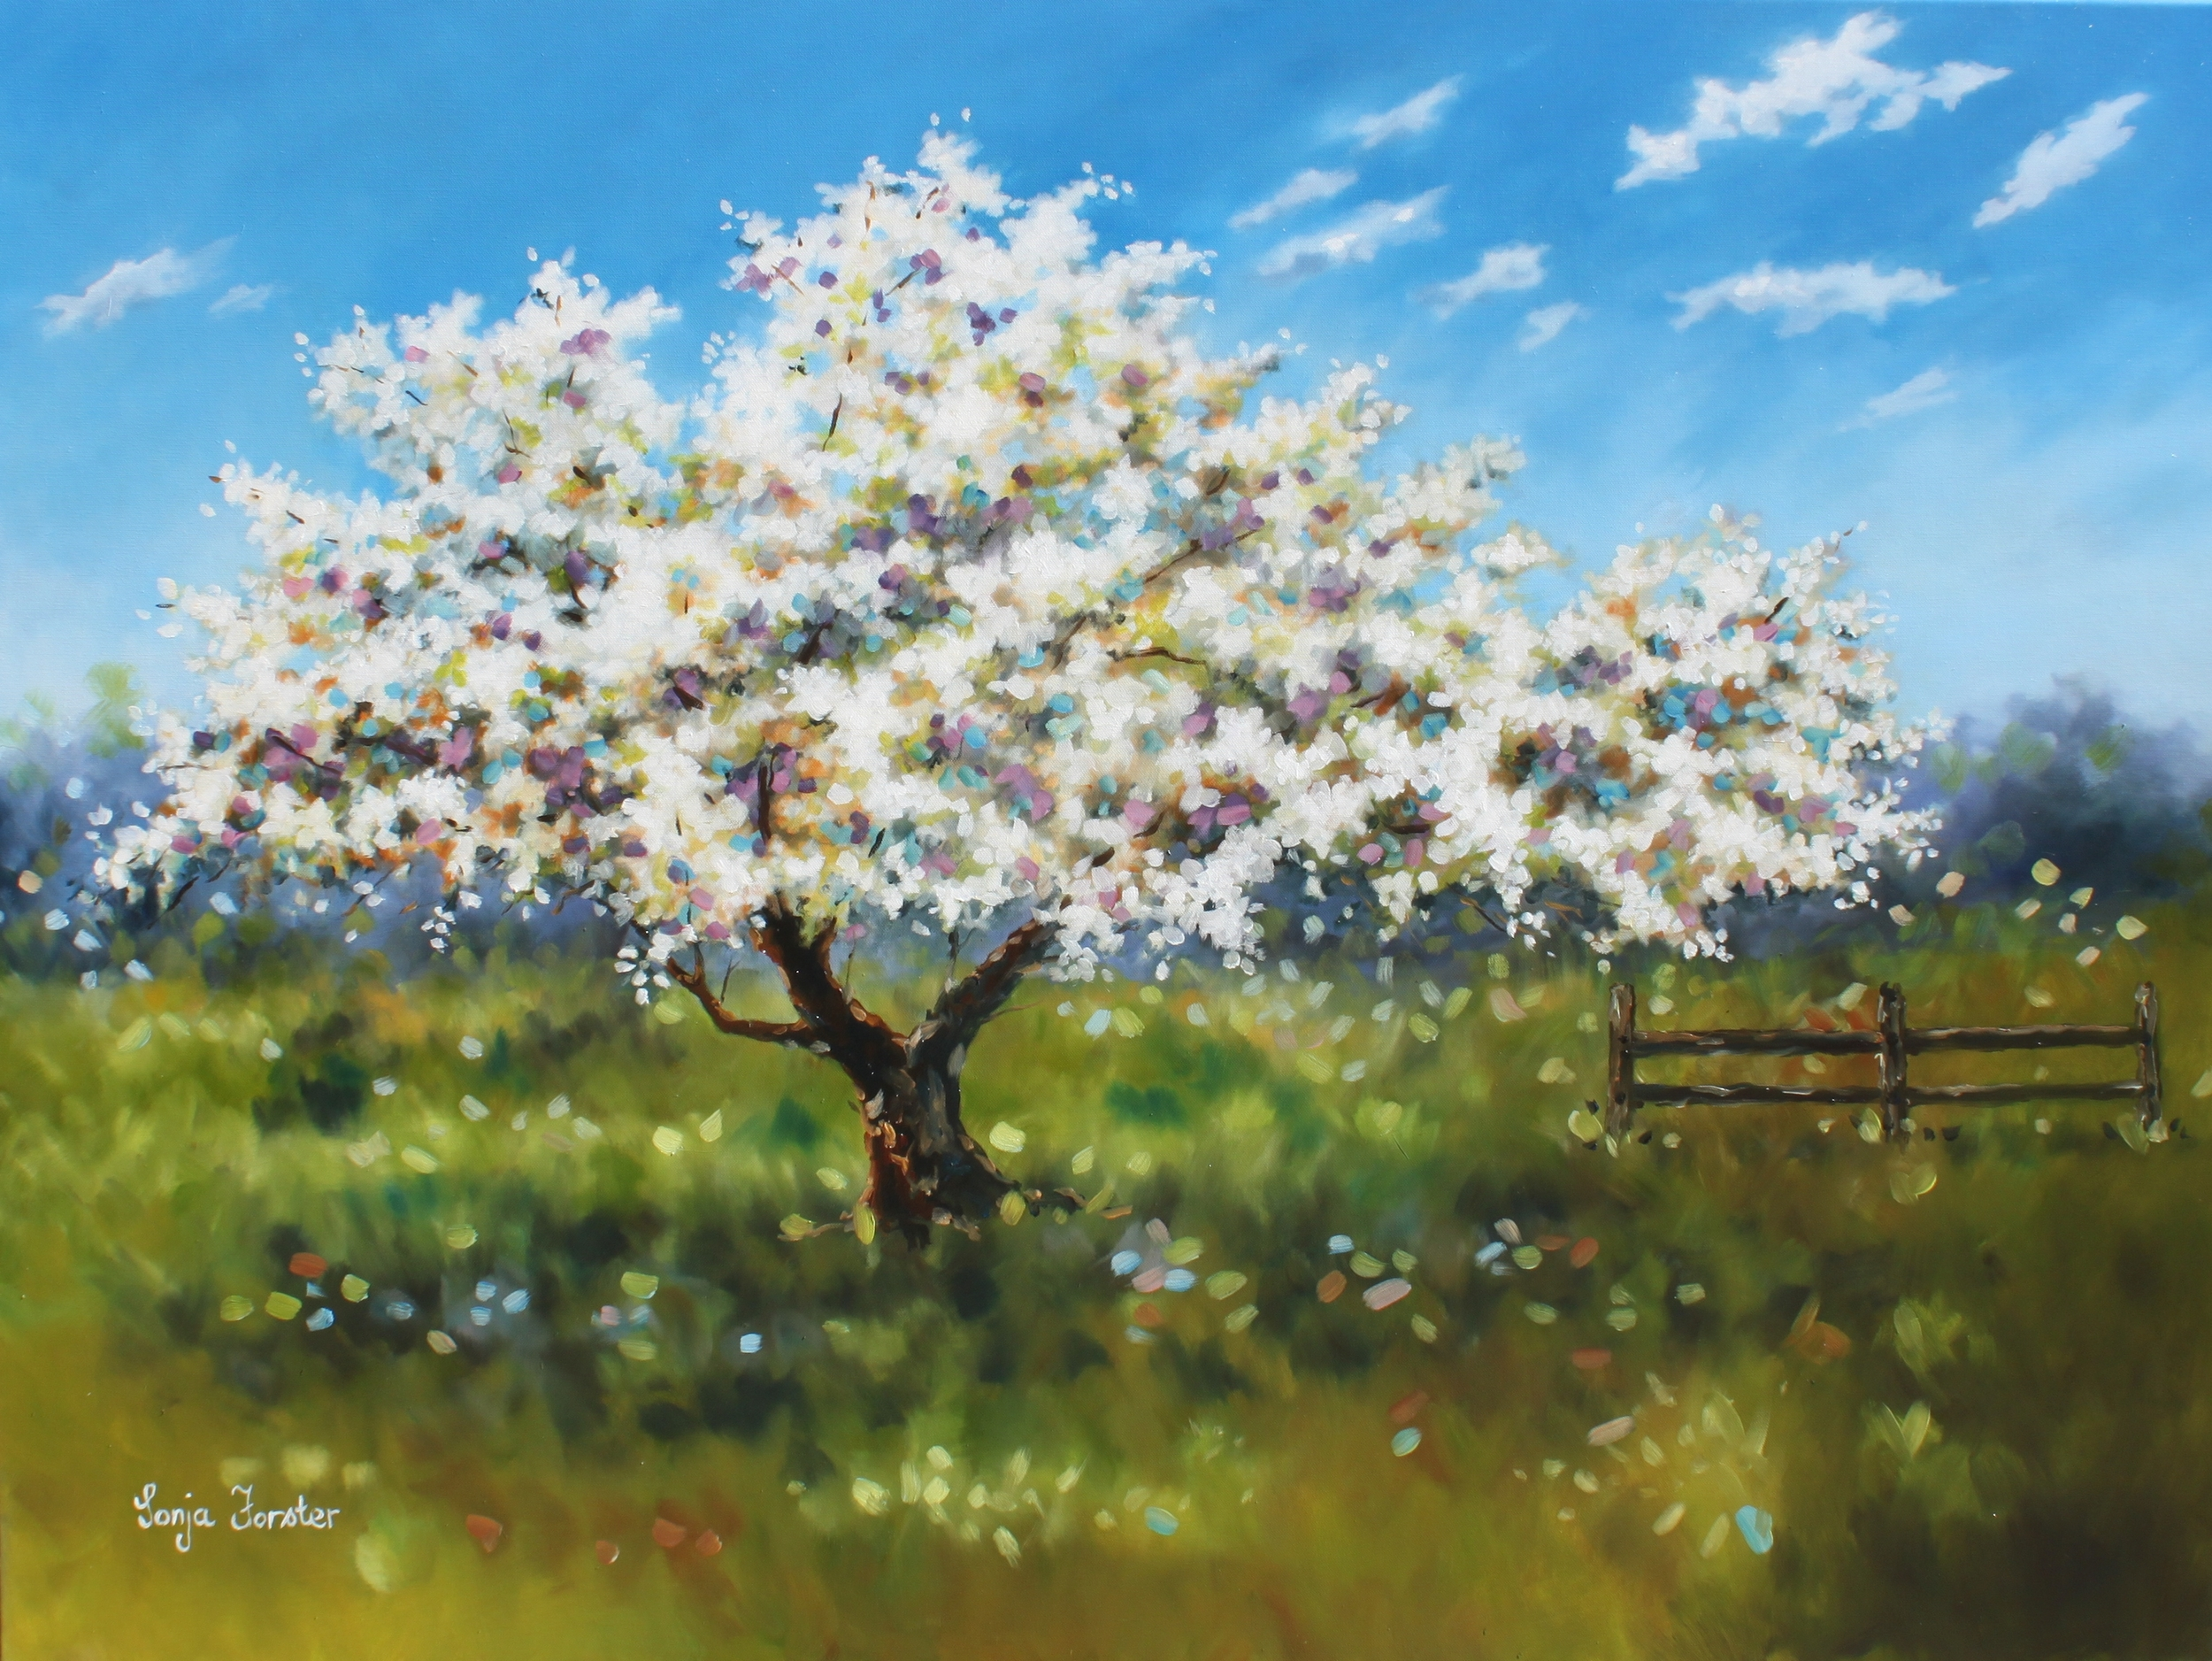 Sonja Forster Art - Tree in Full Bloom.jpg